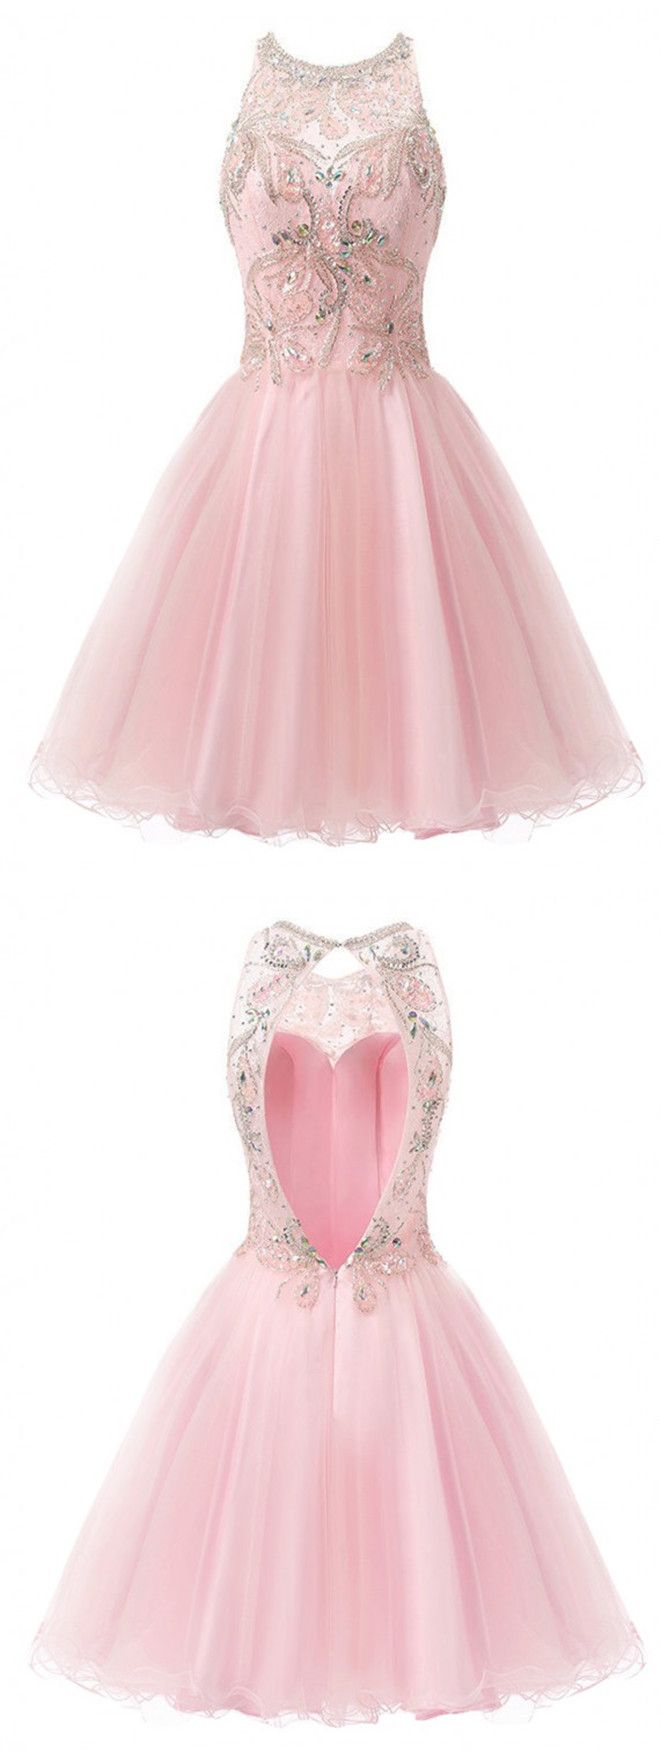 Cute Pink Homecoming Dresses, Short Beaded Prom Dresses, Party ...